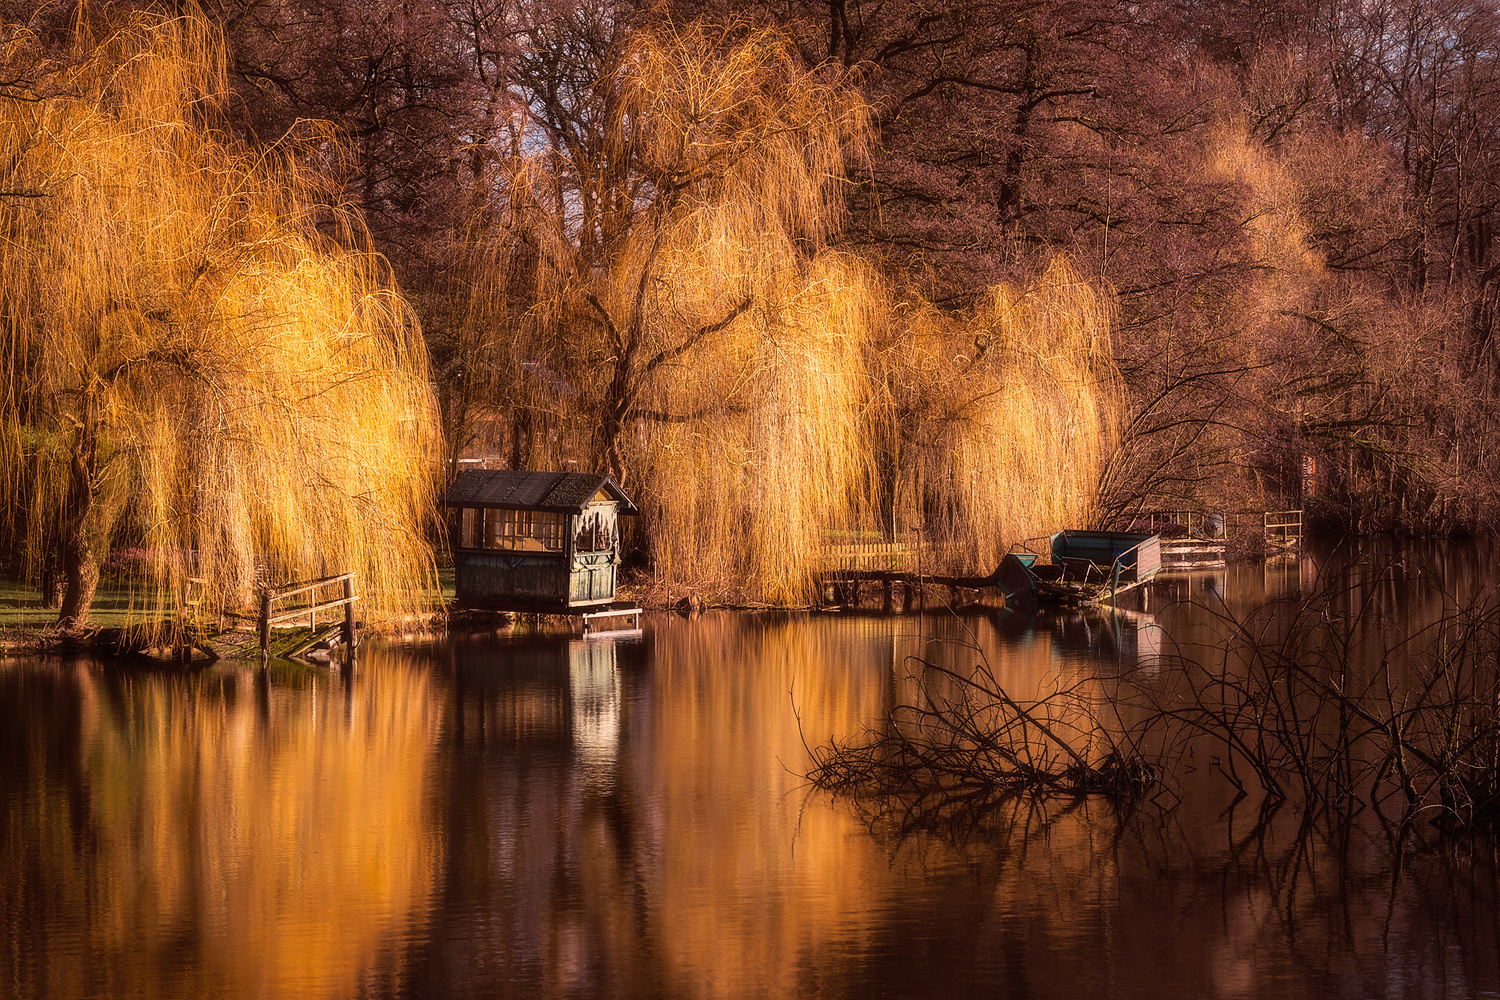 cabin at the lake by Axel Jusseit